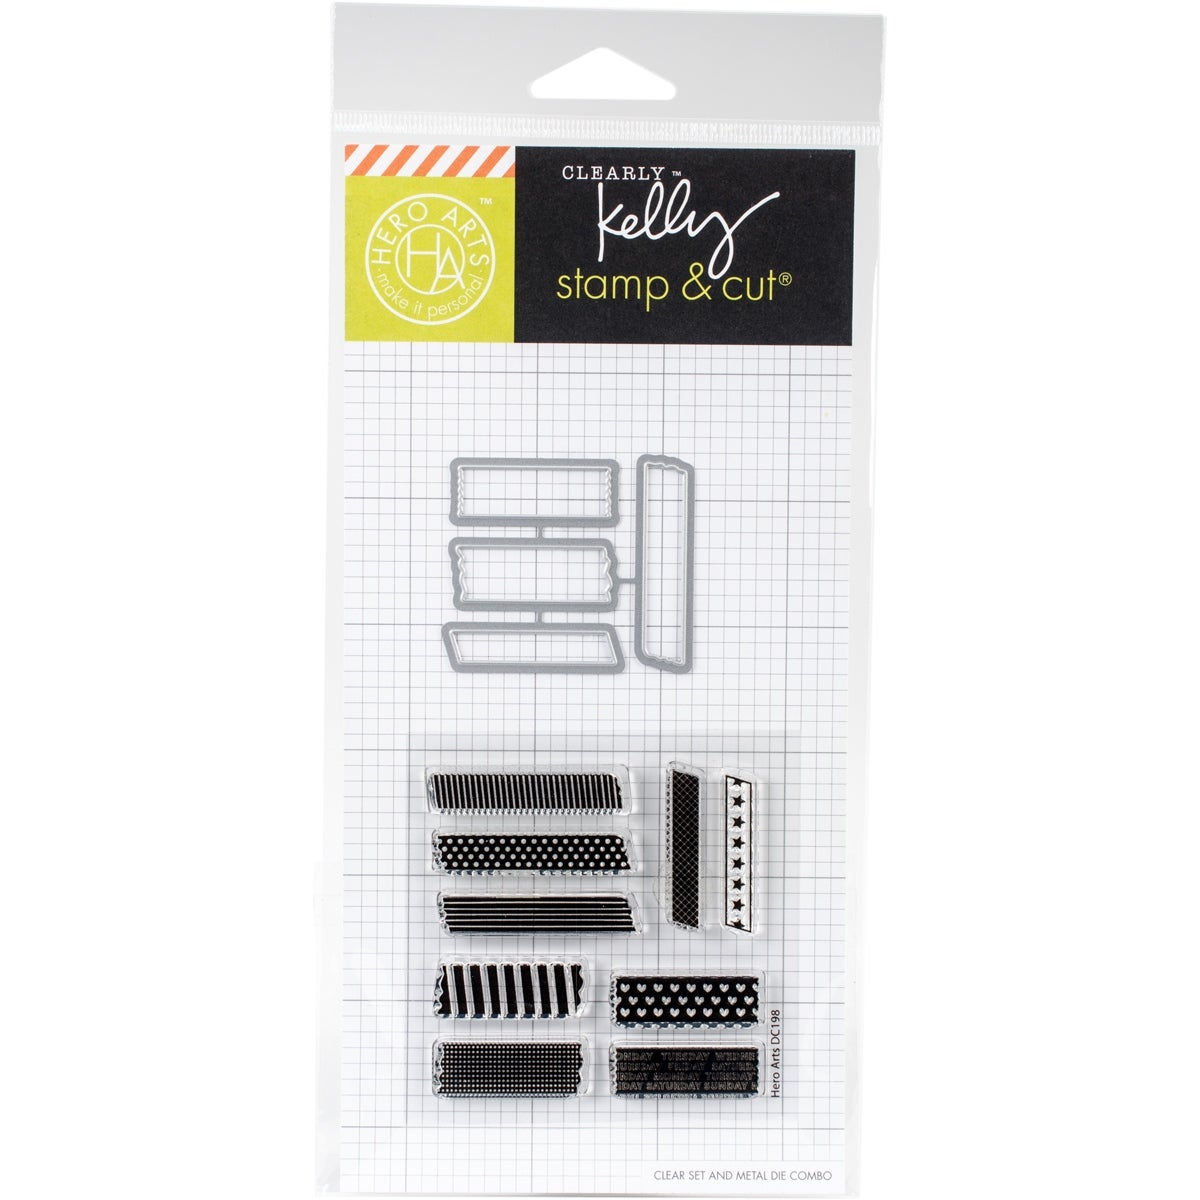 Shop Kelly Purkey Stamp Cut 3X4 Tape